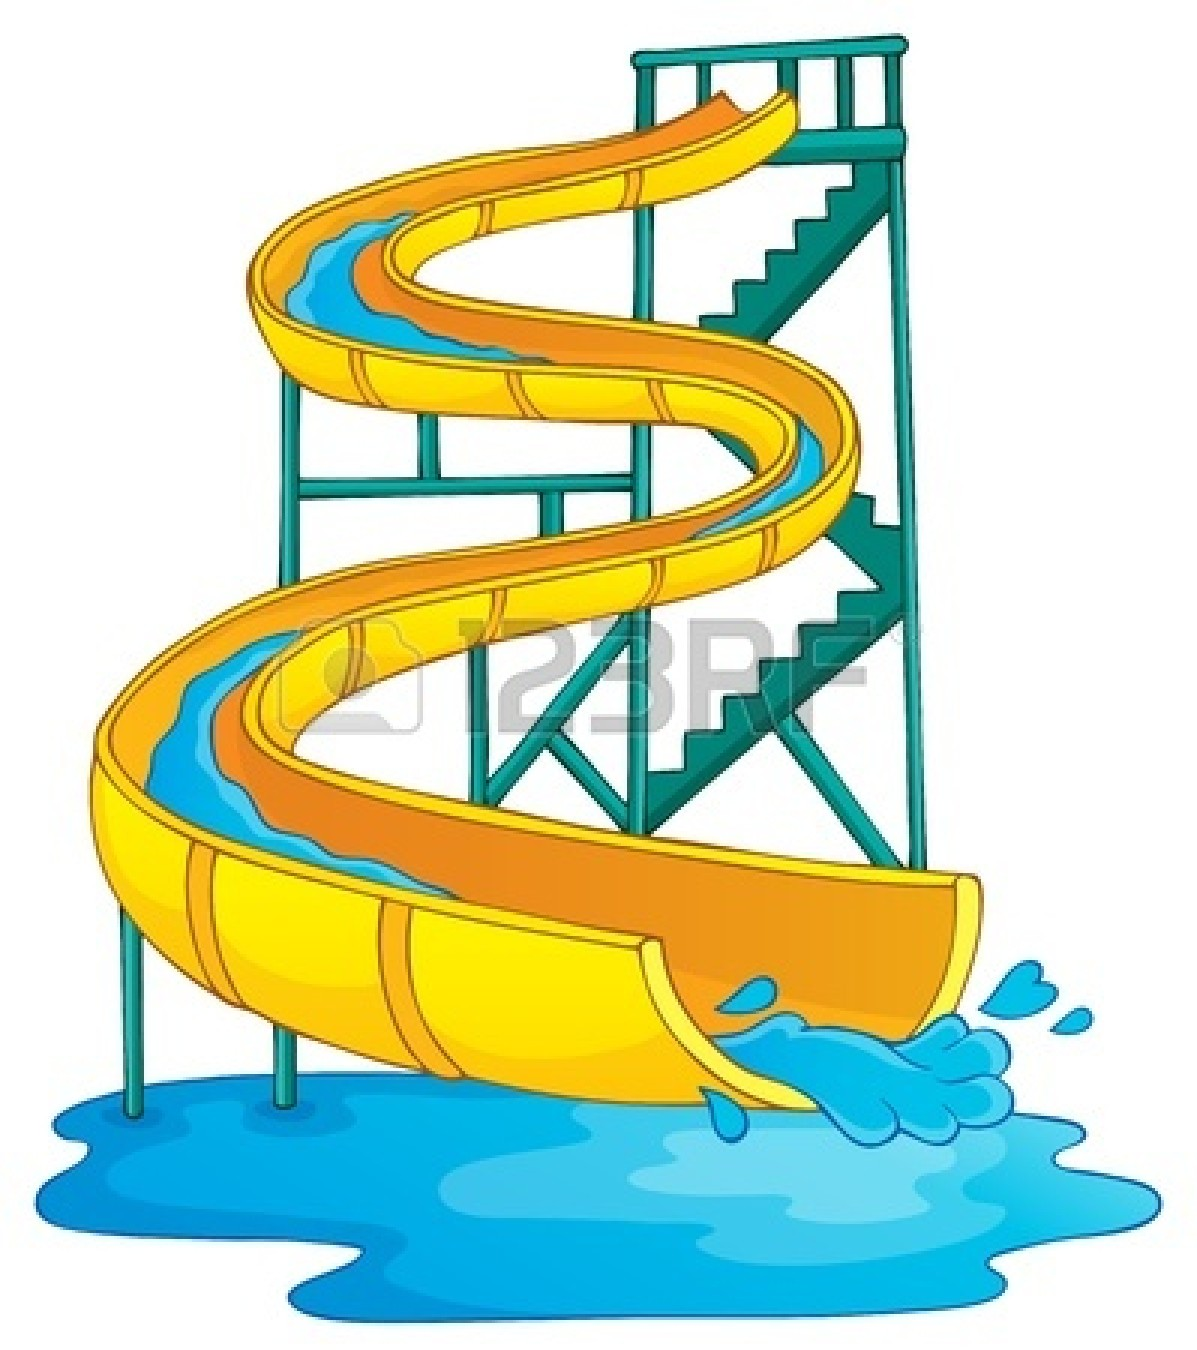 Water park slides clipart clipart library download Water Slide Clipart | Free download best Water Slide Clipart ... clipart library download